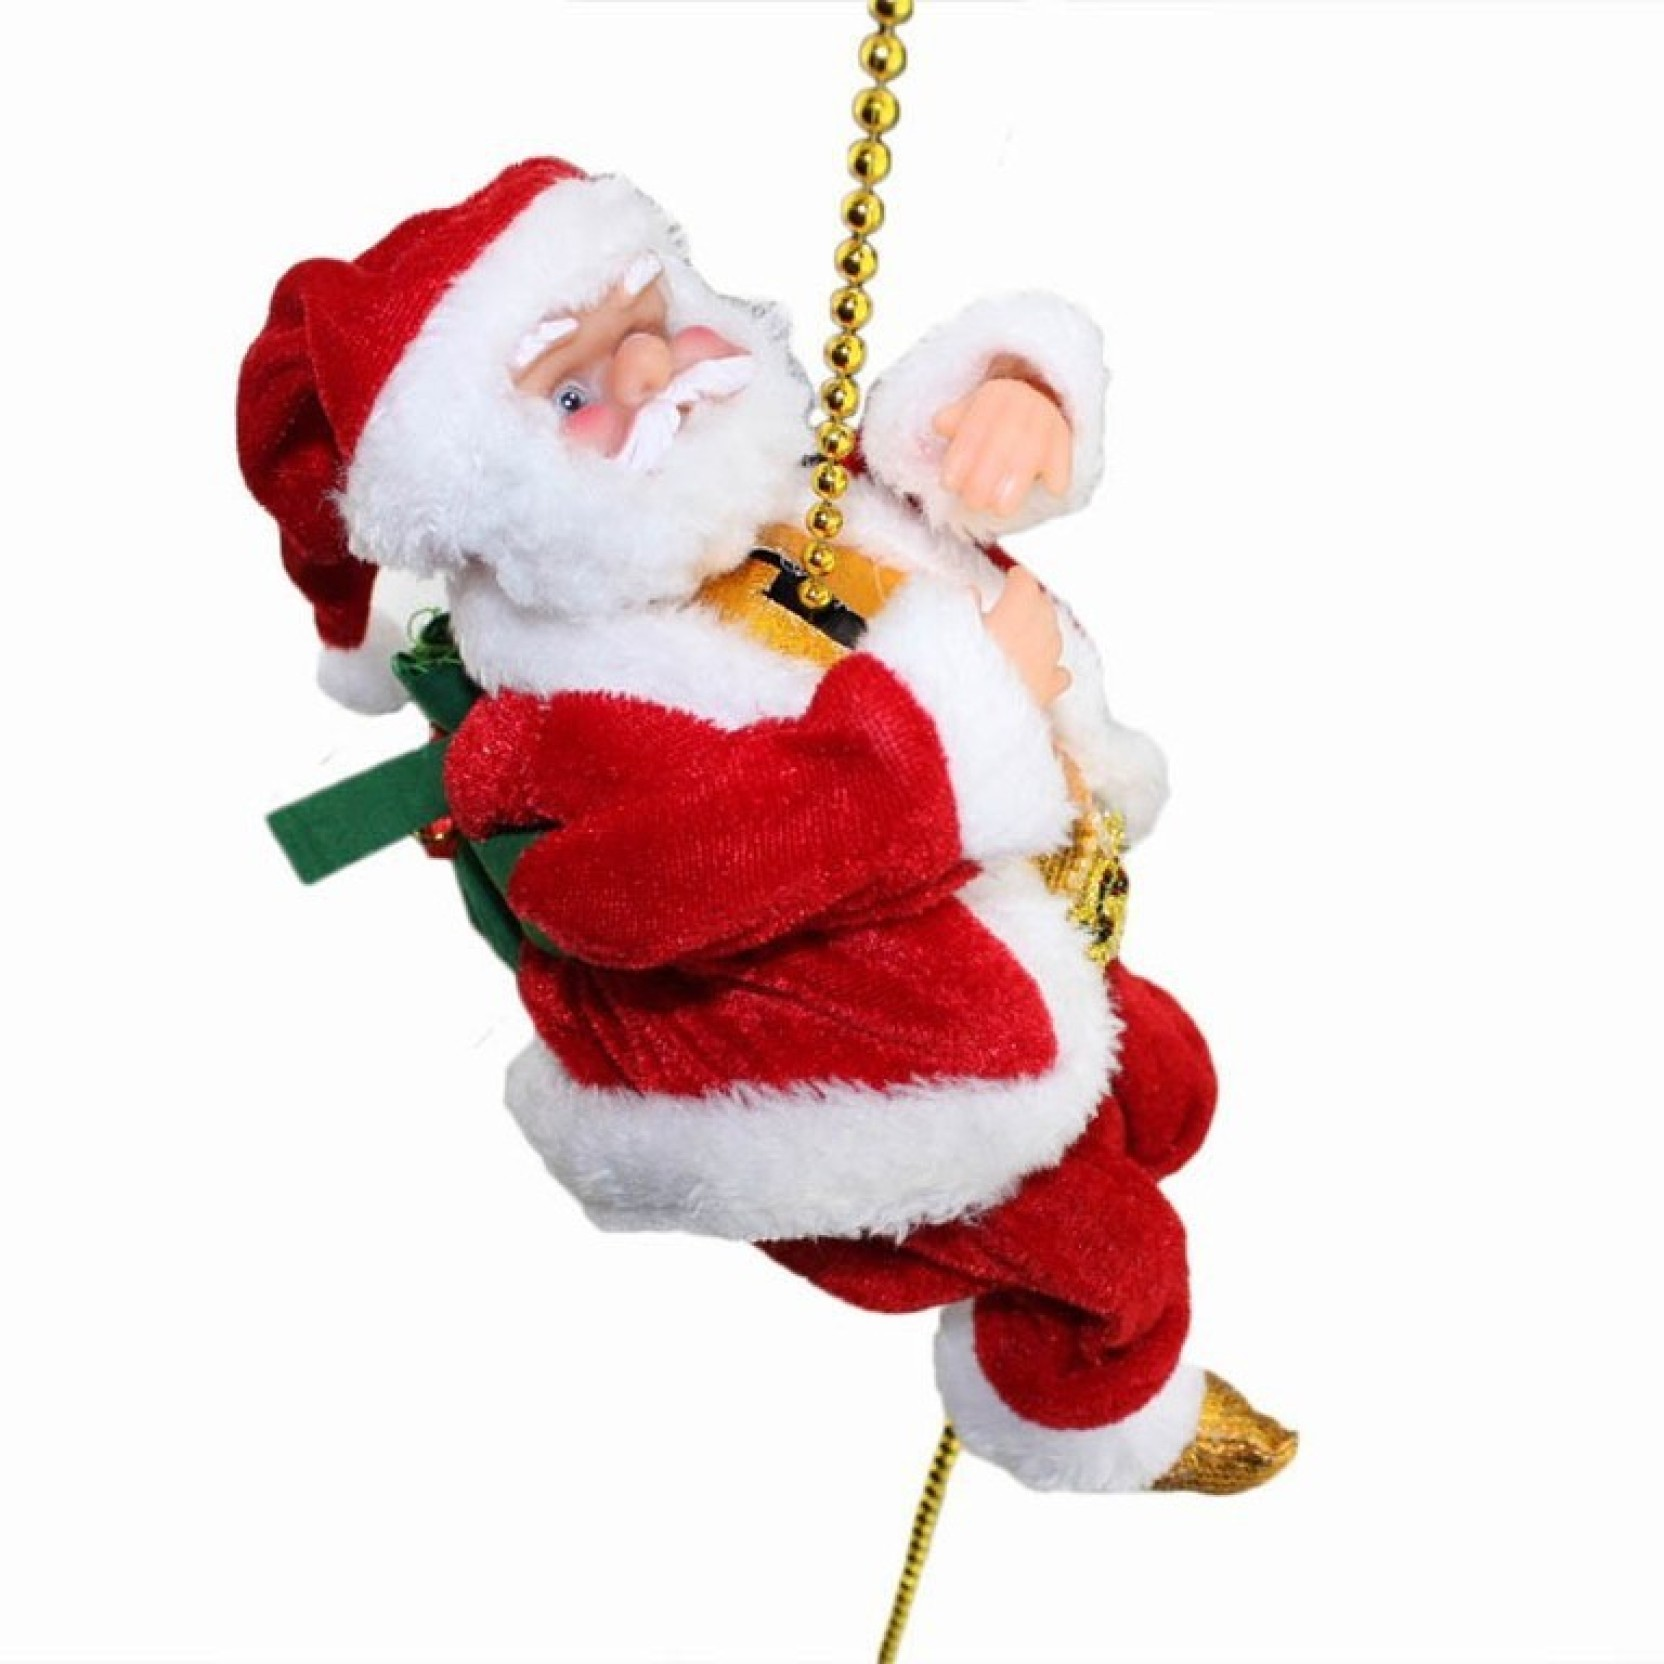 4775d71c8af8e New Jaipur Handicraft Musical Santa Claus Climbing on rope X Mas Gifts  Christmas Toys Santa Claus Toys Electric power toys Christmas gifts for  gifts party ...